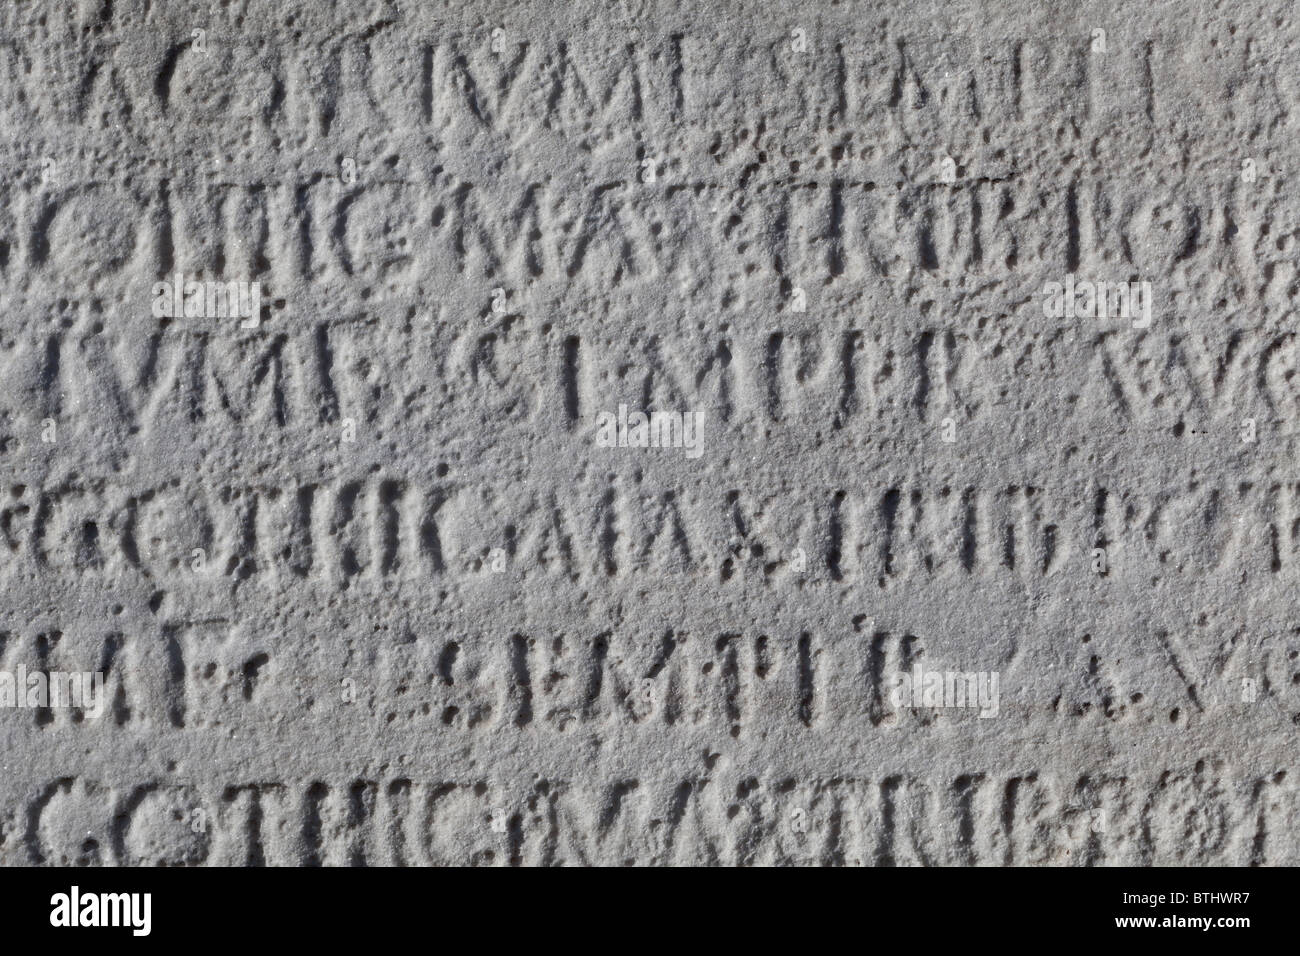 Latin inscription on stone on the ponte cestio in Rome, Italy - Stock Image